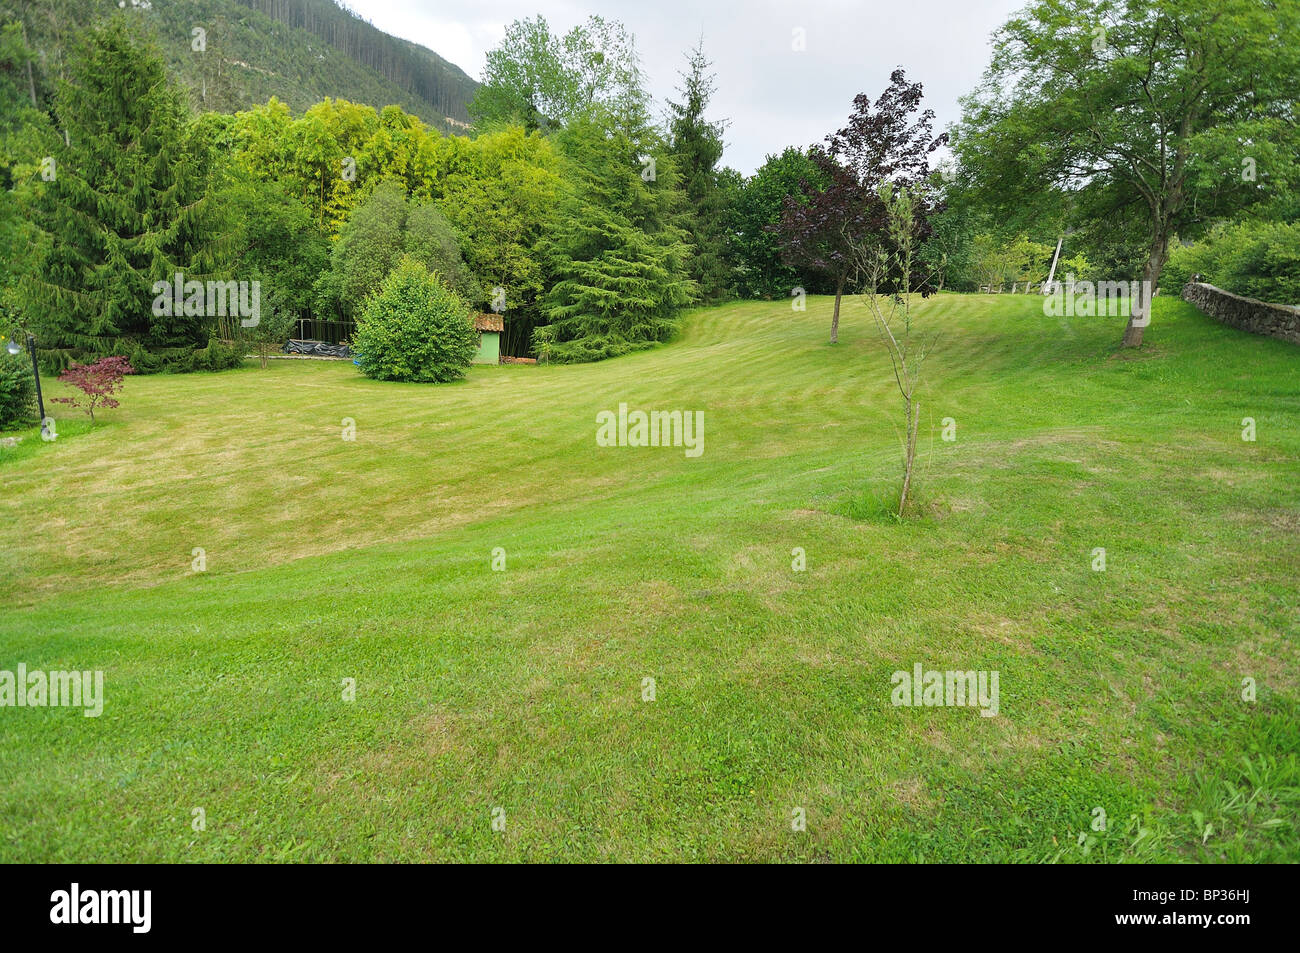 garden with a big area of lawn and different trees - Stock Image